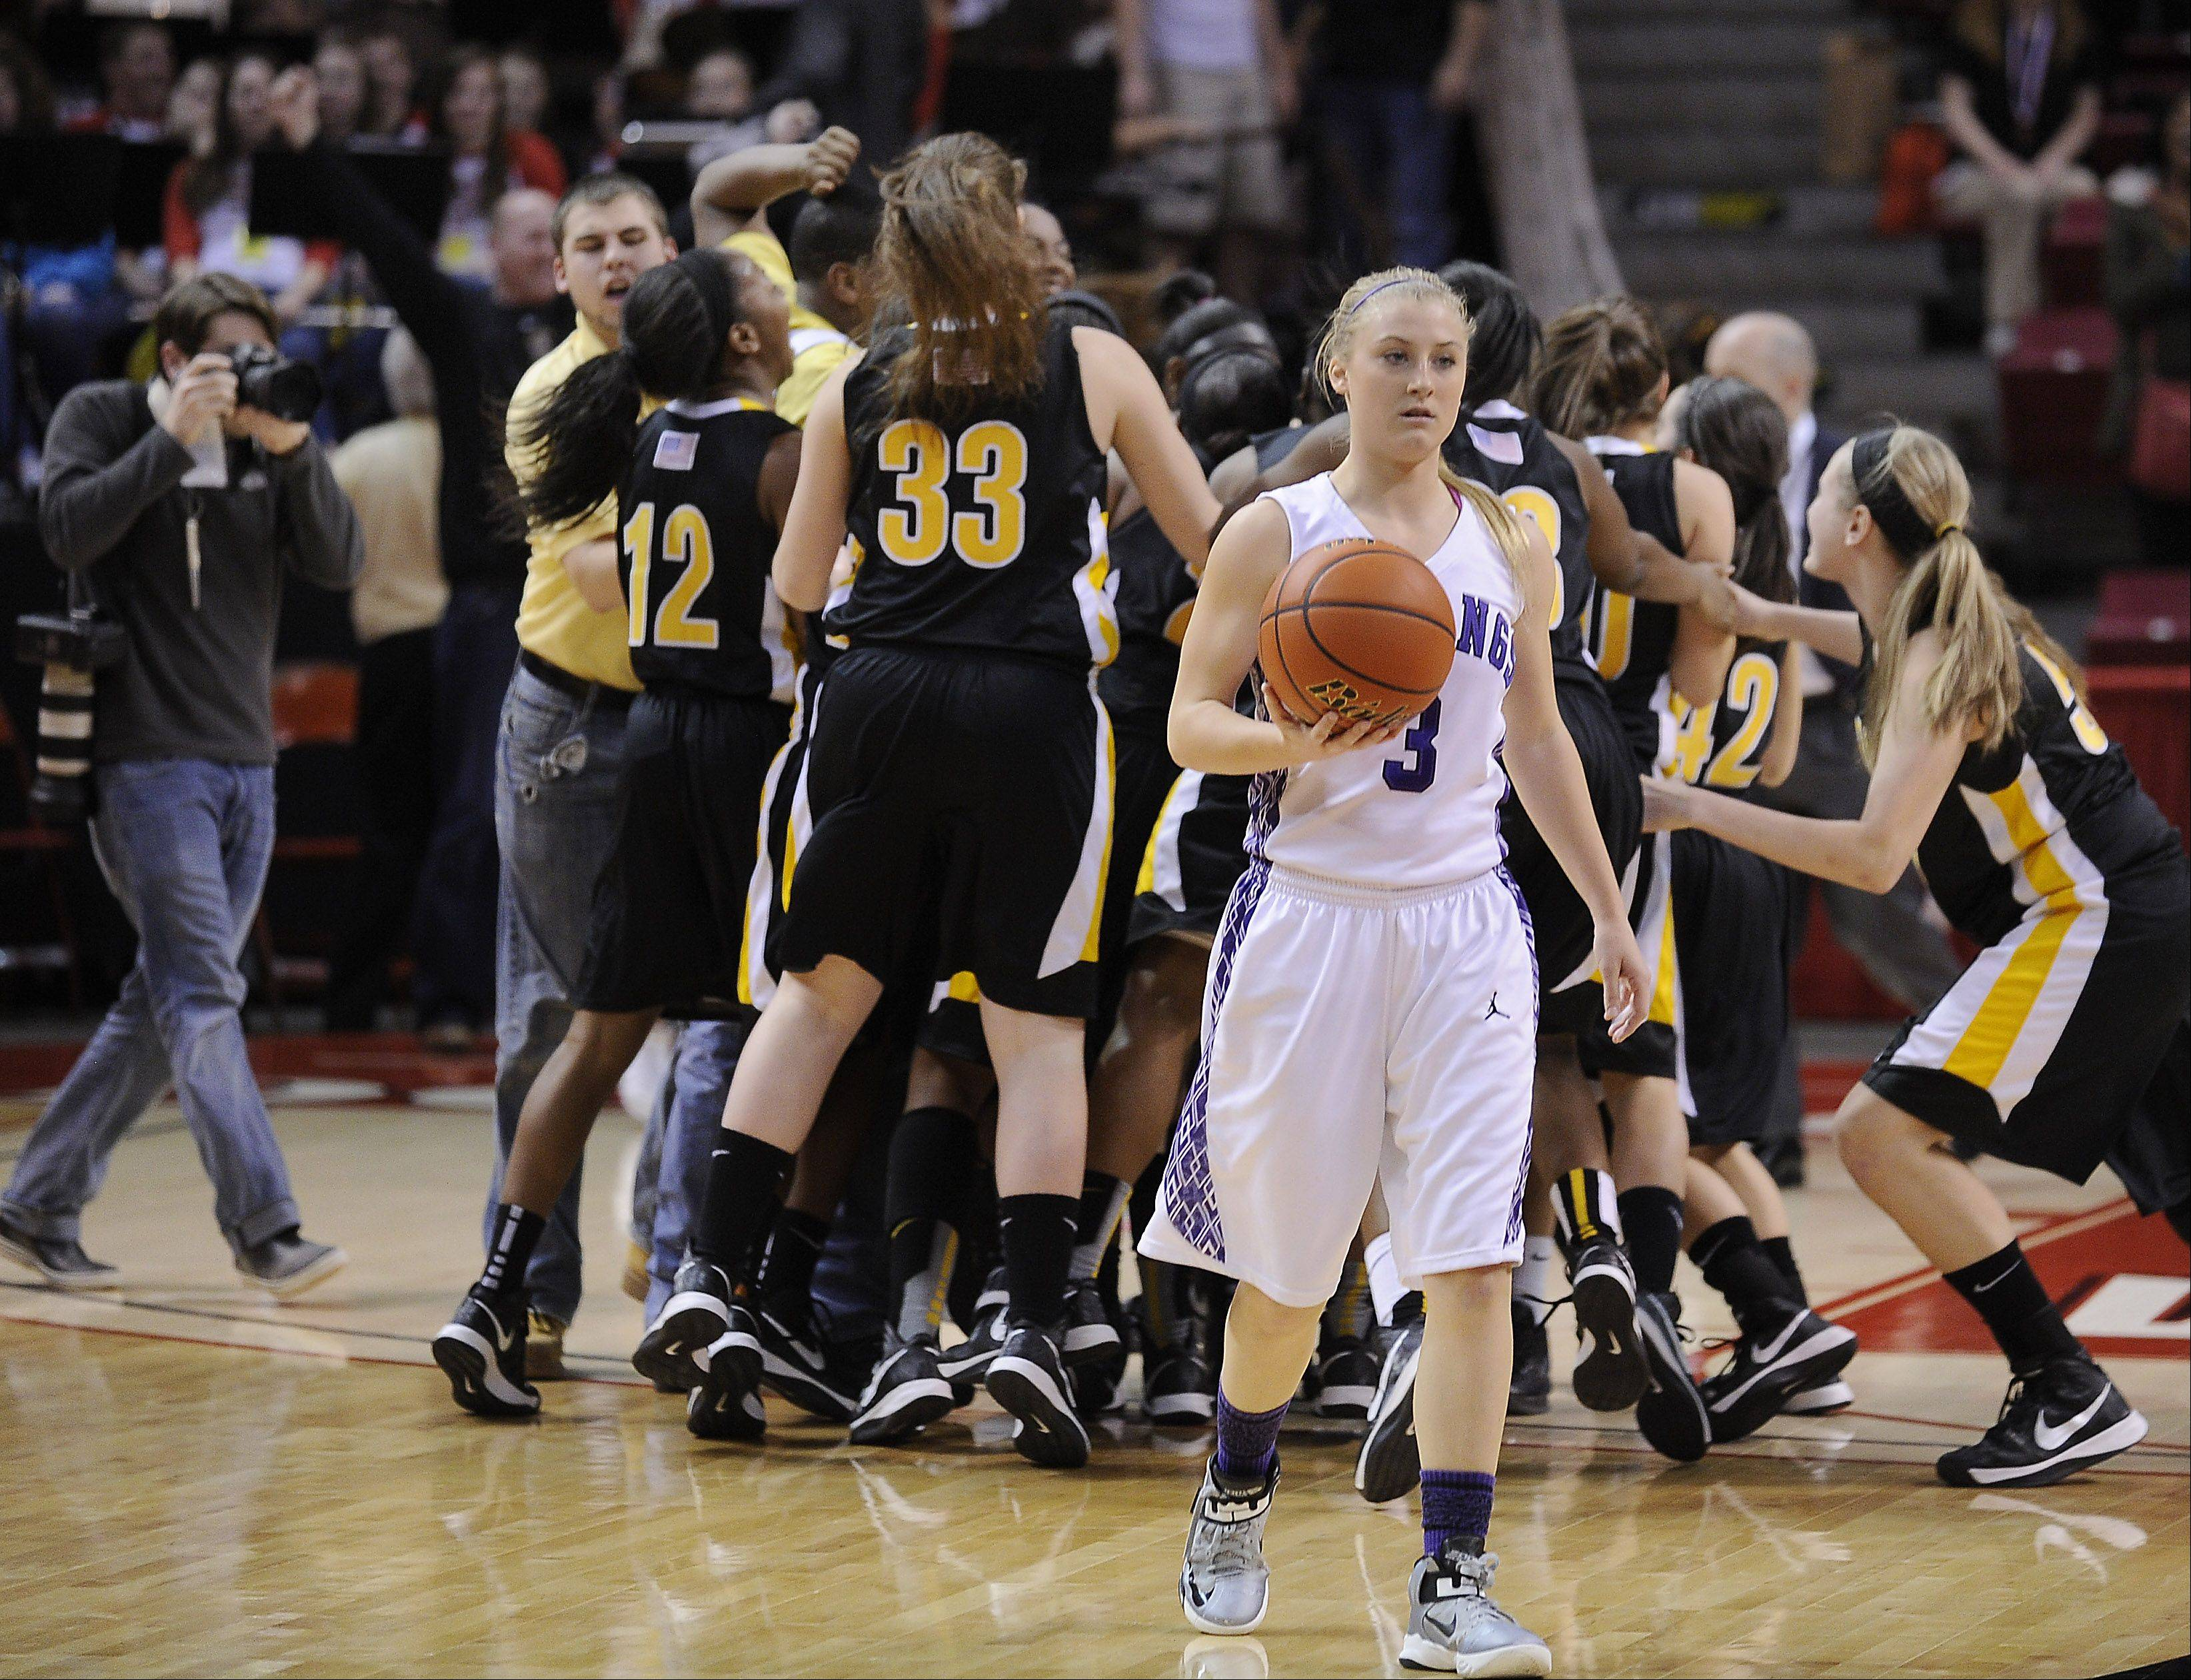 Rolling Meadows' Jackie Kemph leaves the court after Marian Catholic's last-second victory in the Class 4A girls basketball state championship game Saturday in Normal.